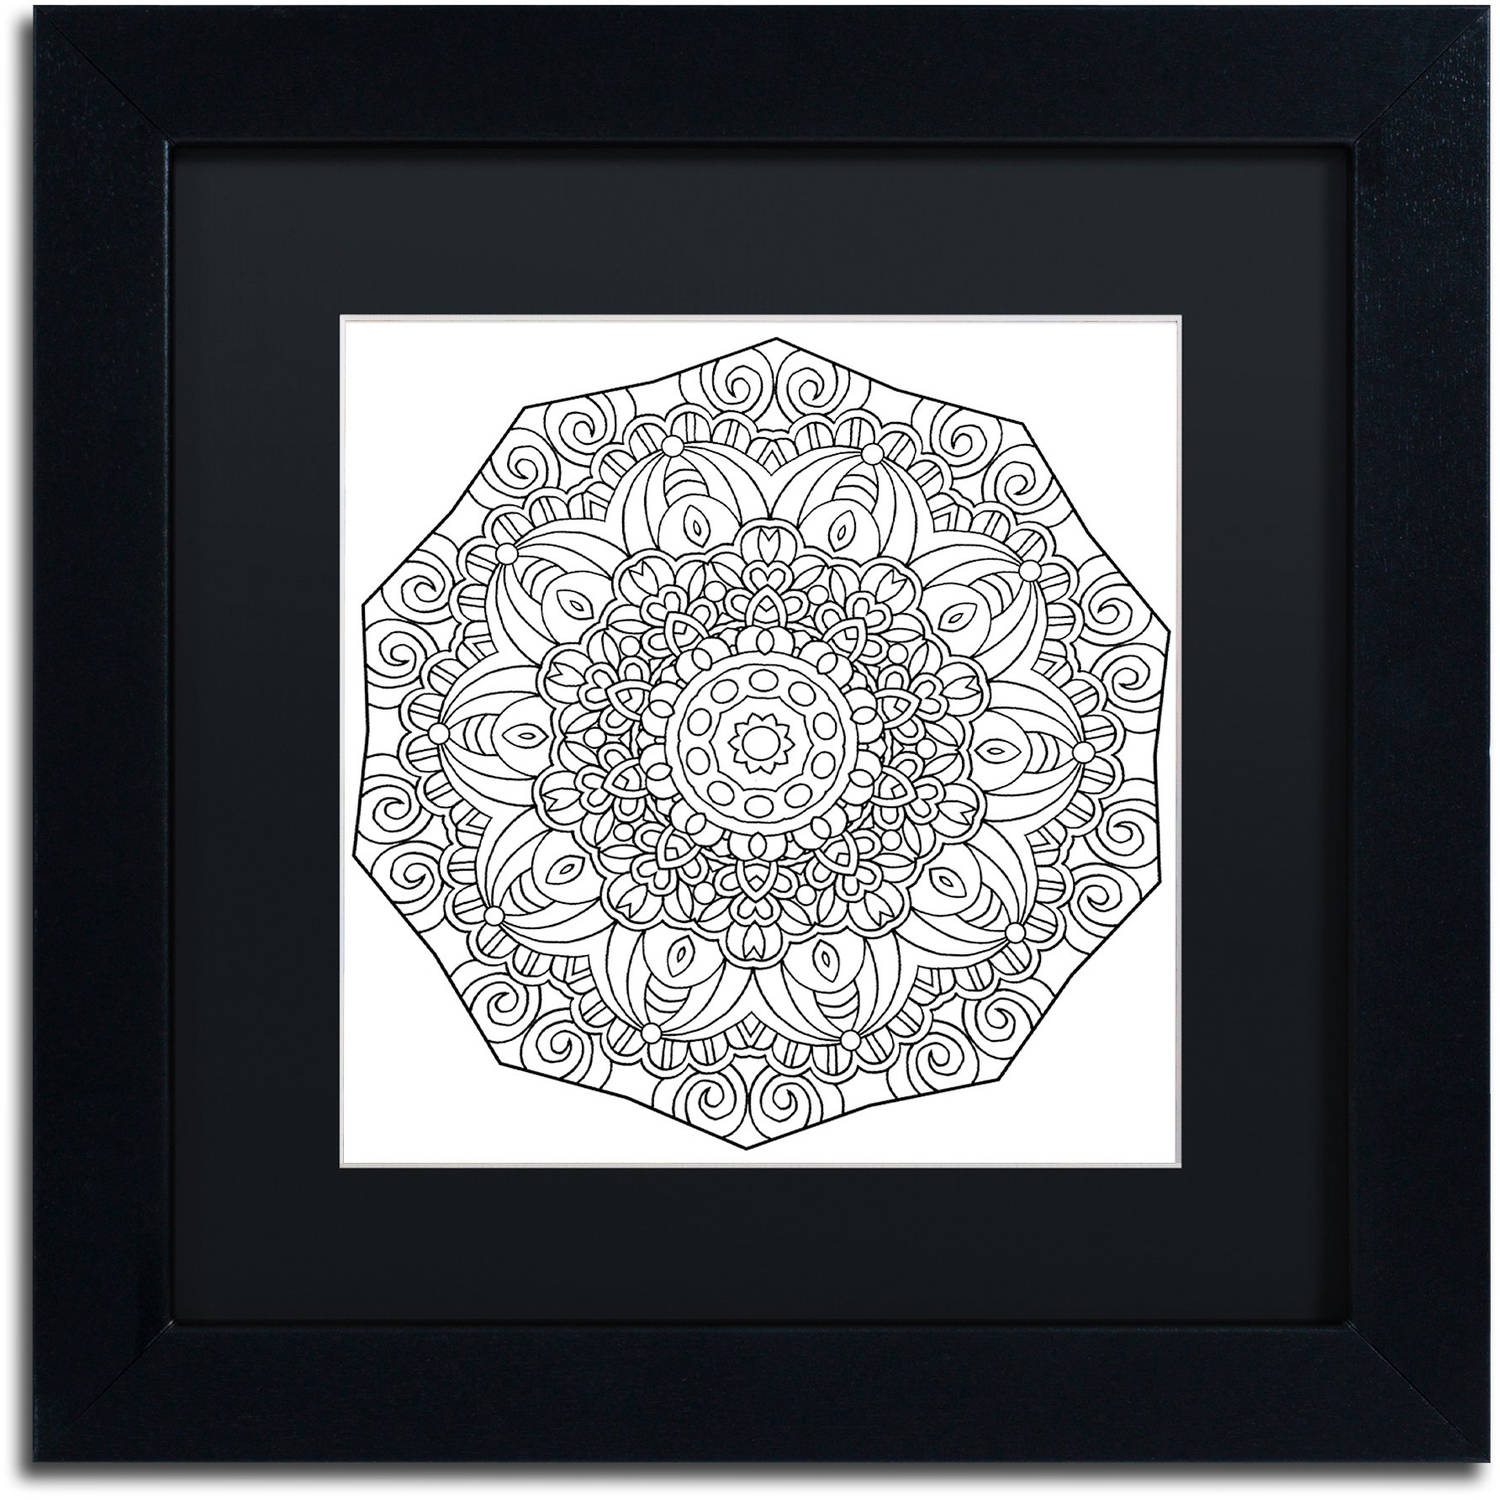 """Trademark Fine Art """"Mixed Coloring Book 11"""" Canvas Art by Kathy G. Ahrens, Black Matte, Black Frame"""